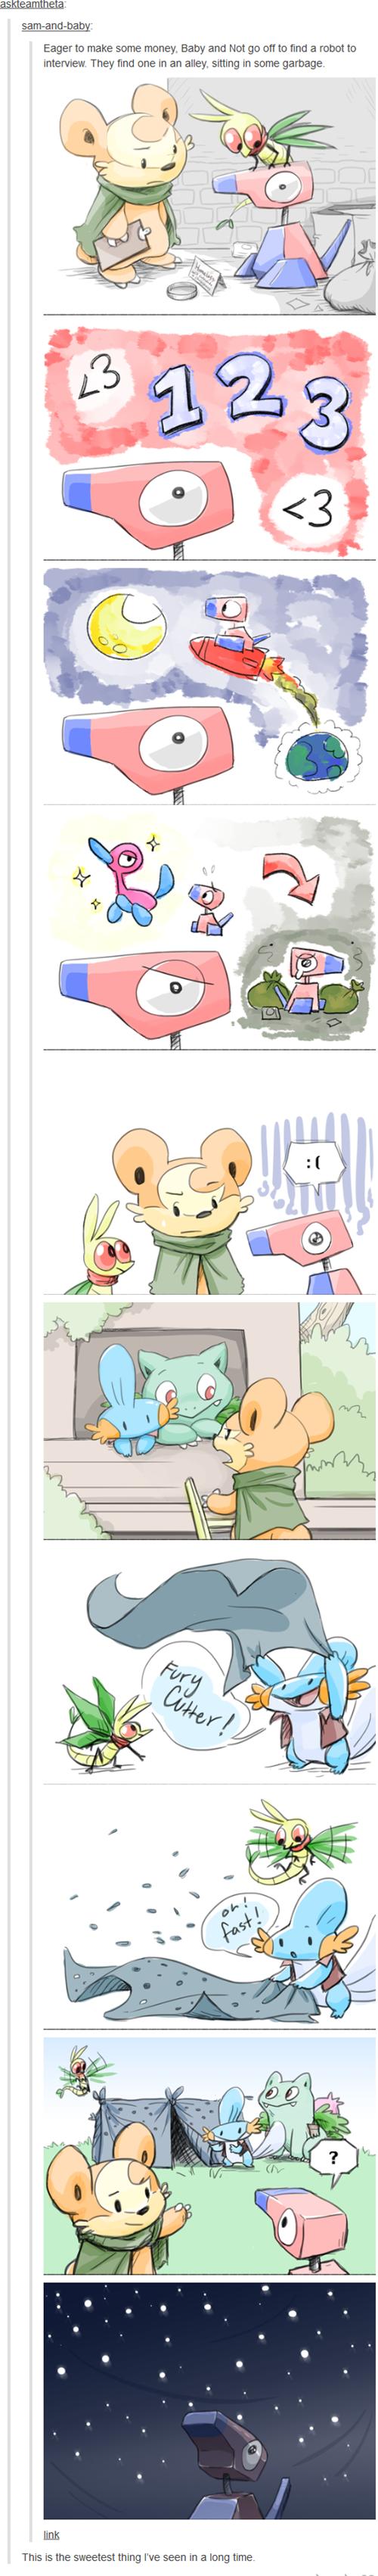 Pokémon,porygon,web comics